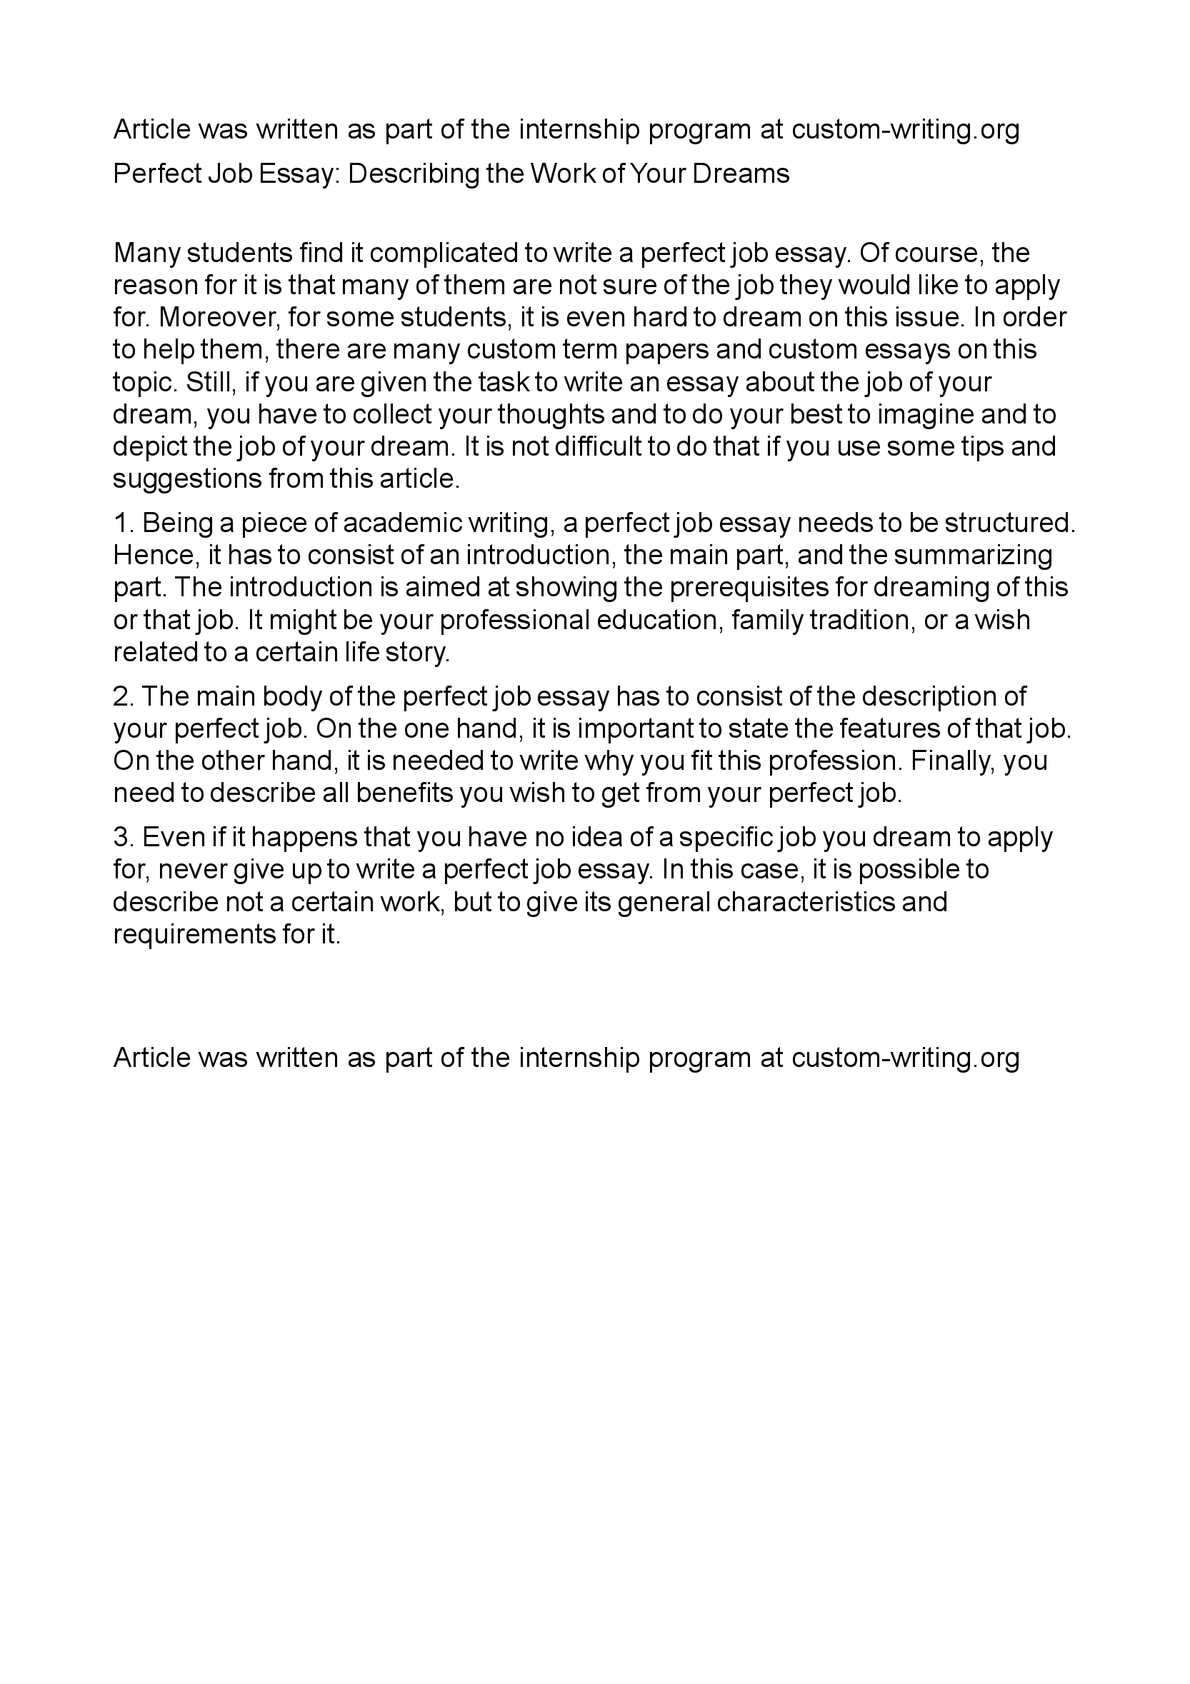 calam atilde copy o perfect job essay describing the work of your dreams